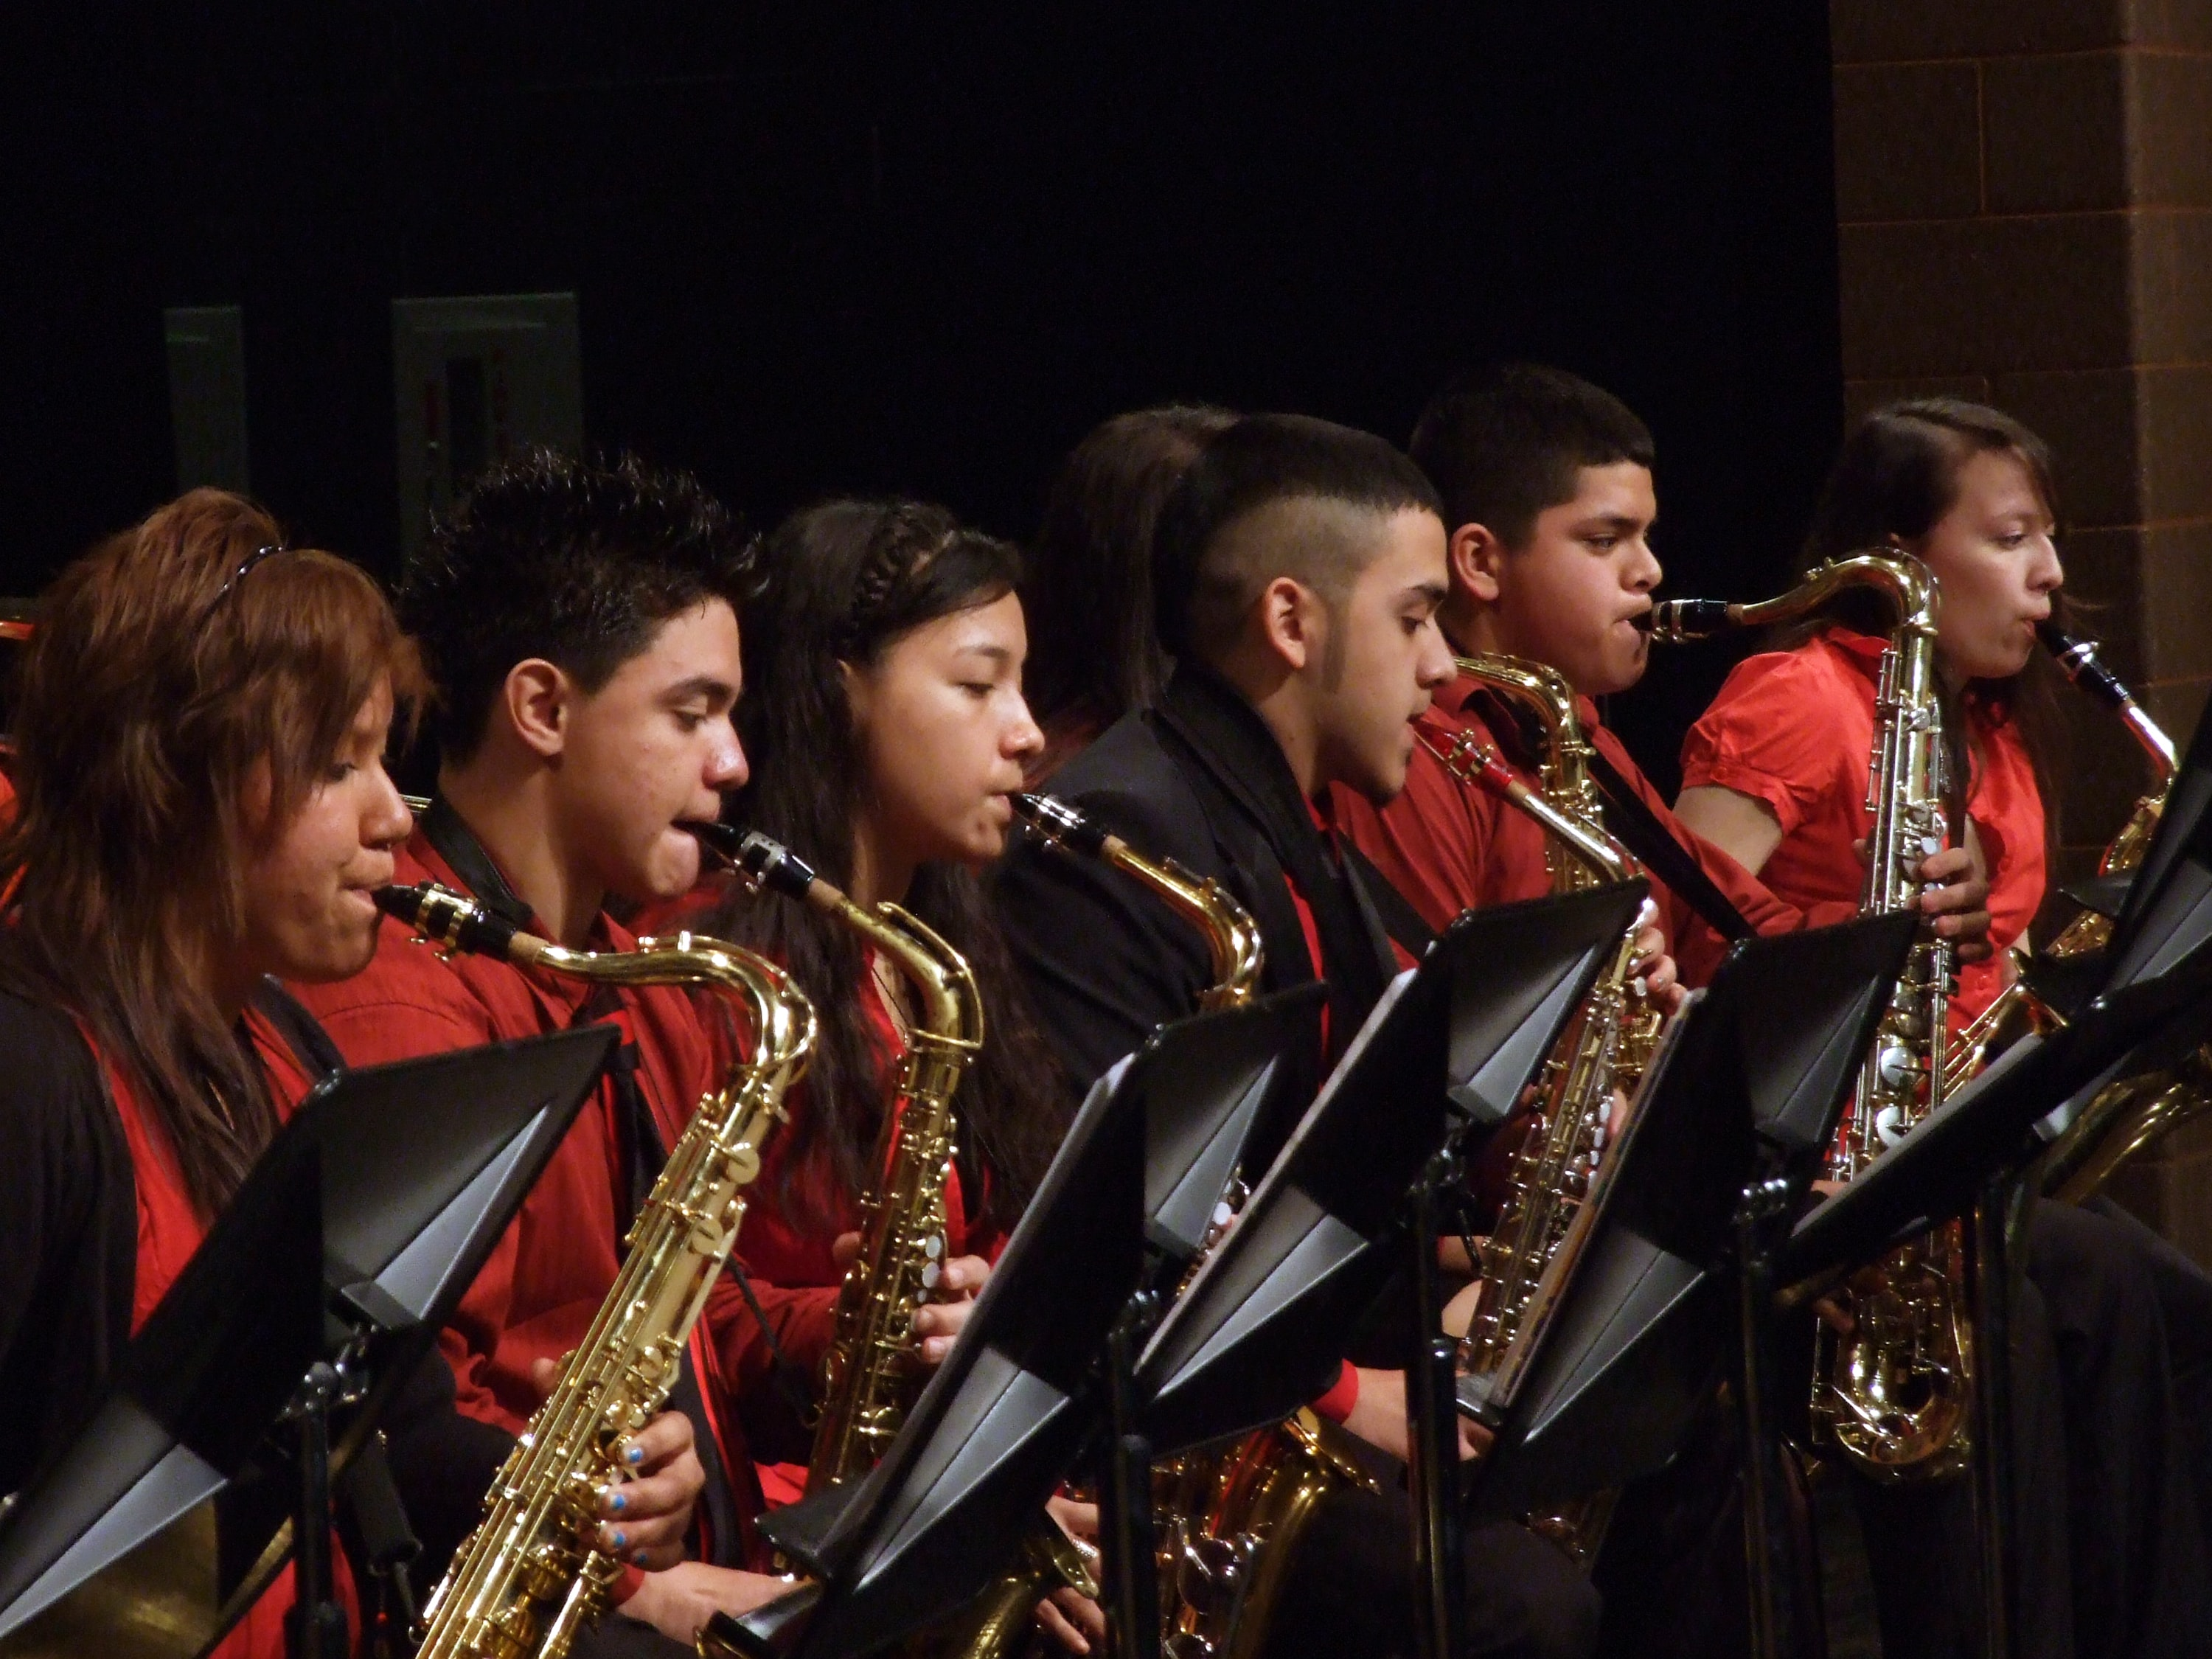 Performers from the Jazz Institute of Chicago, a prior participant in the AIM program. Photo courtesy of Bloomberg.